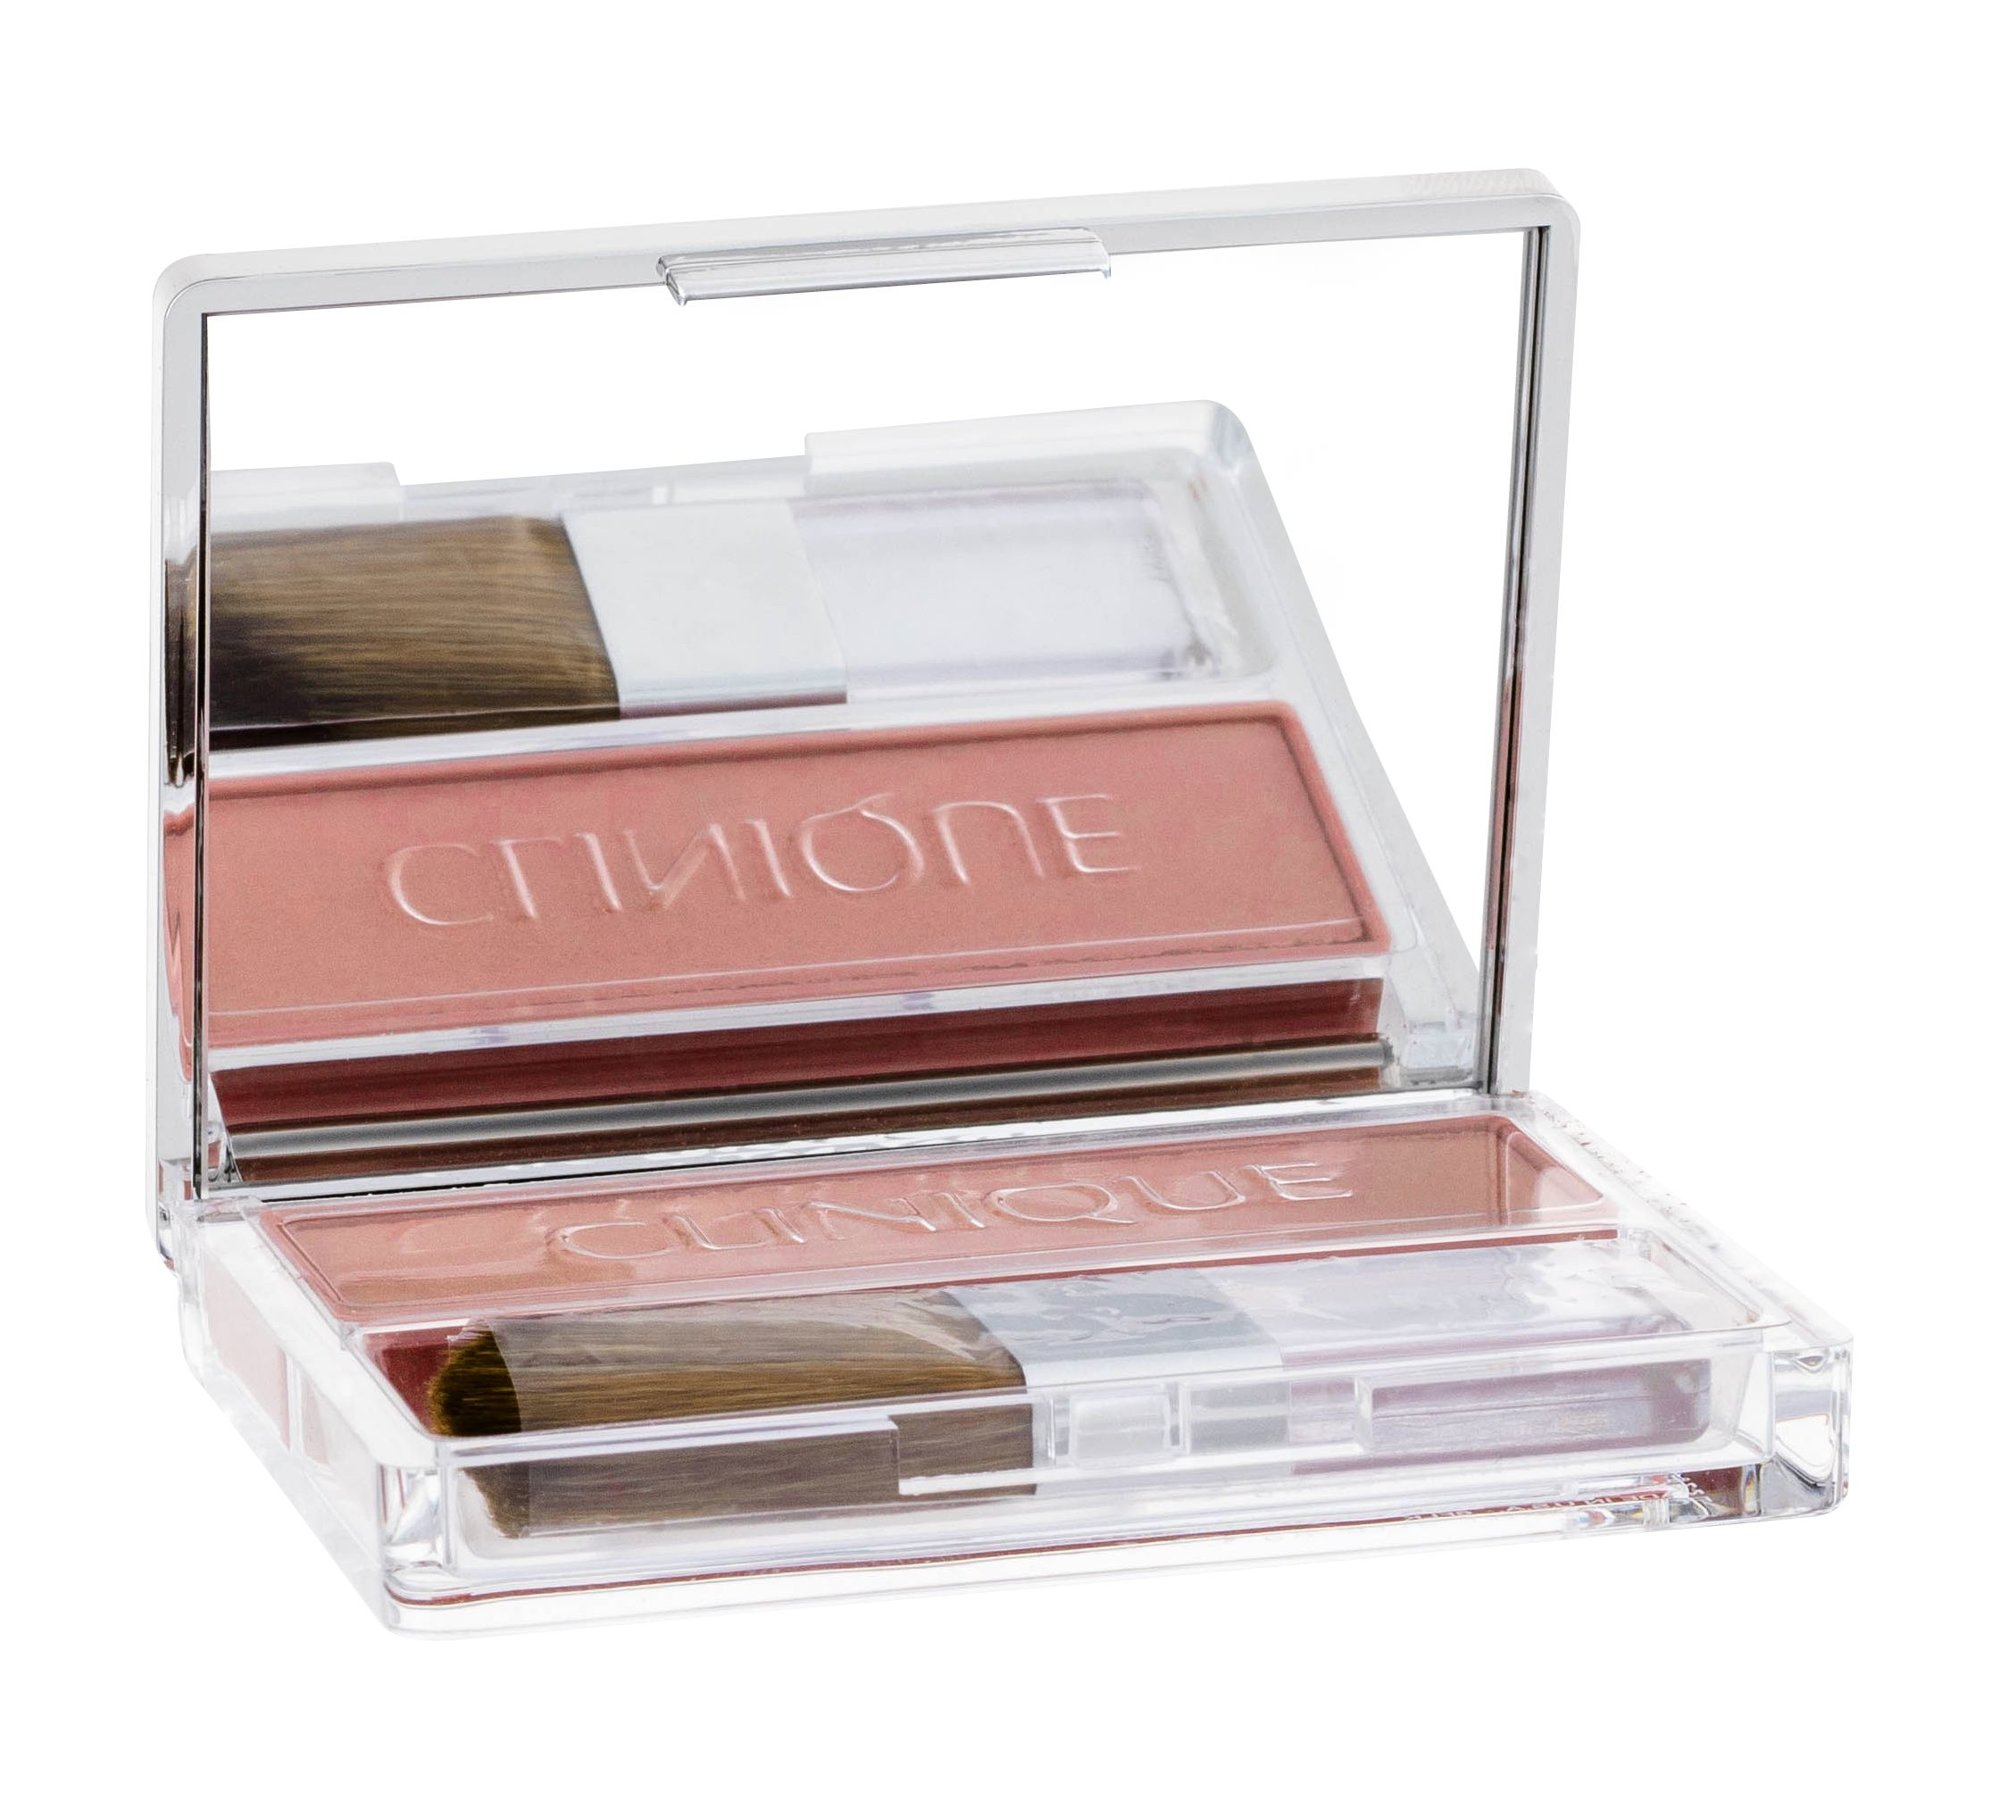 Clinique Blushing Blush Cosmetic 6ml 120 Bashful Blush